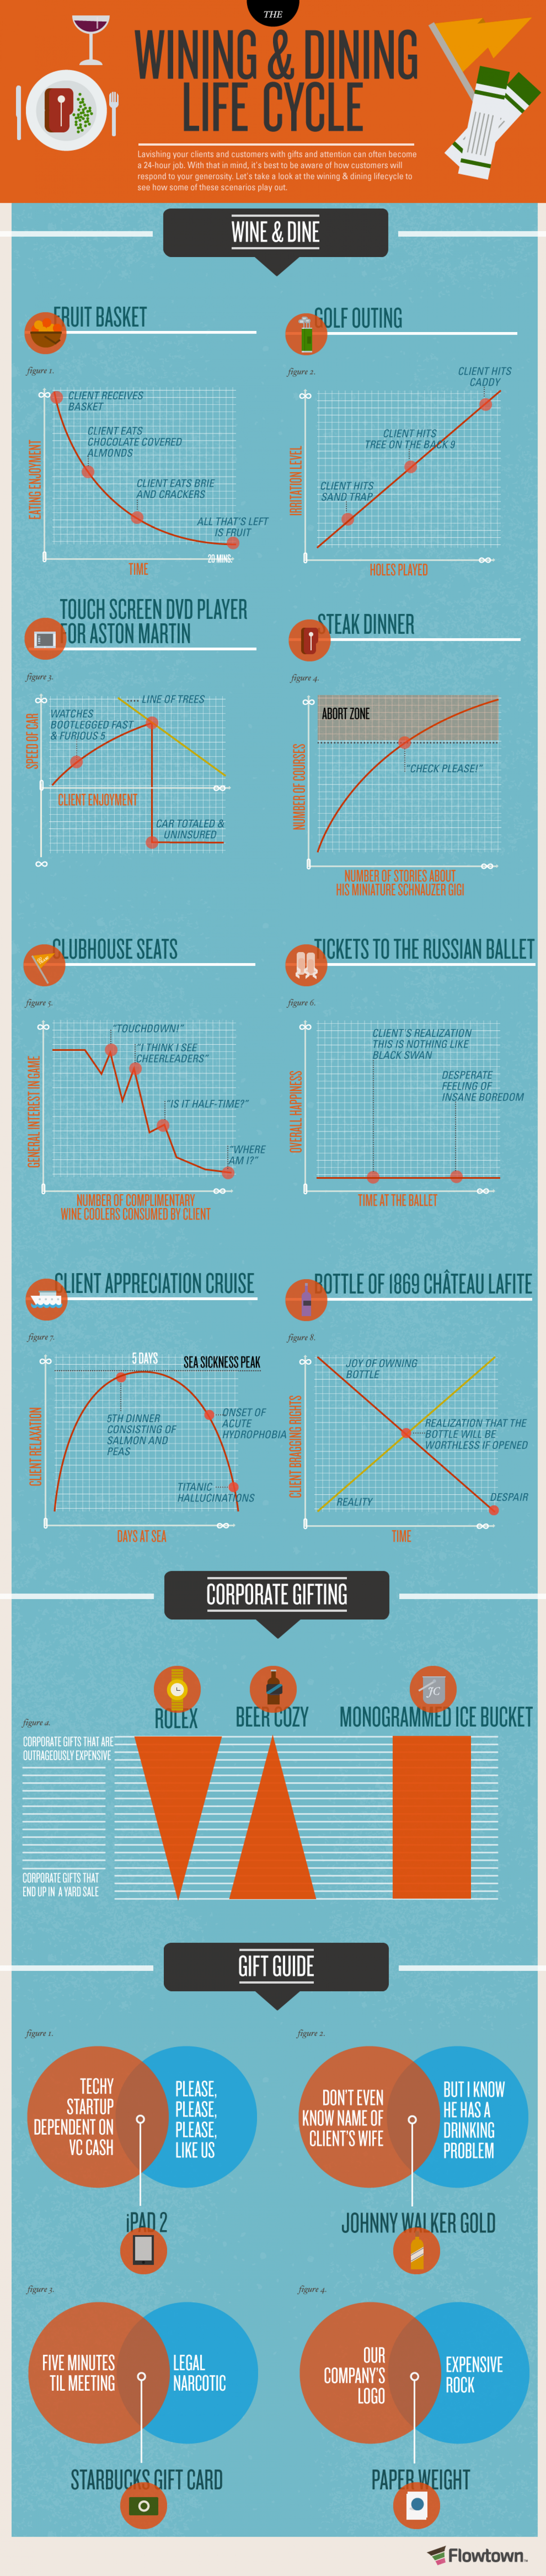 The Wining & Dining Lifecycle Infographic